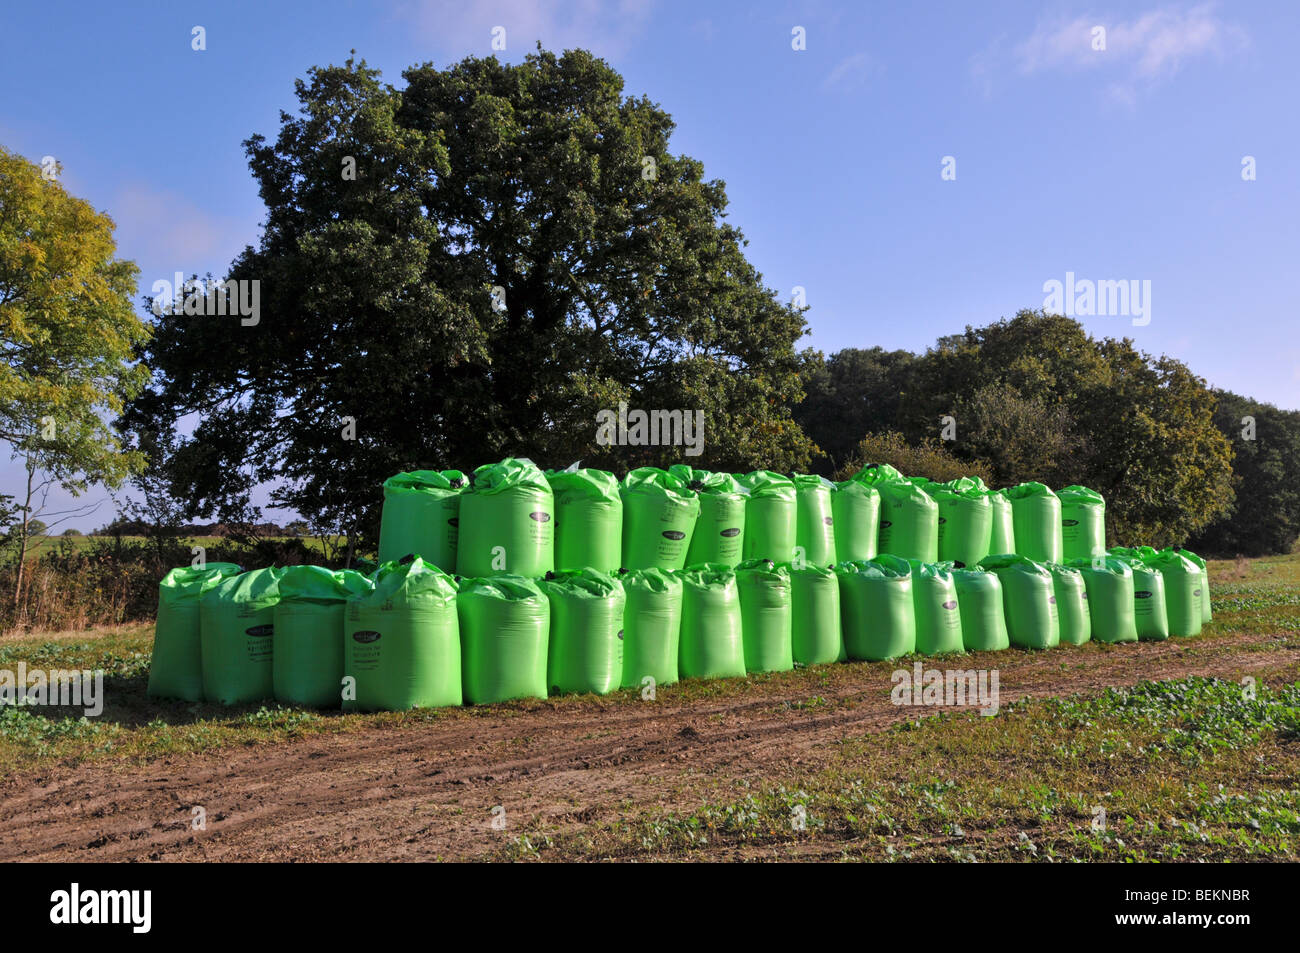 Bagged Biosolids contents derived from sewage by Nutri Bio part of Anglian Water stacked in a farm field Stock Photo